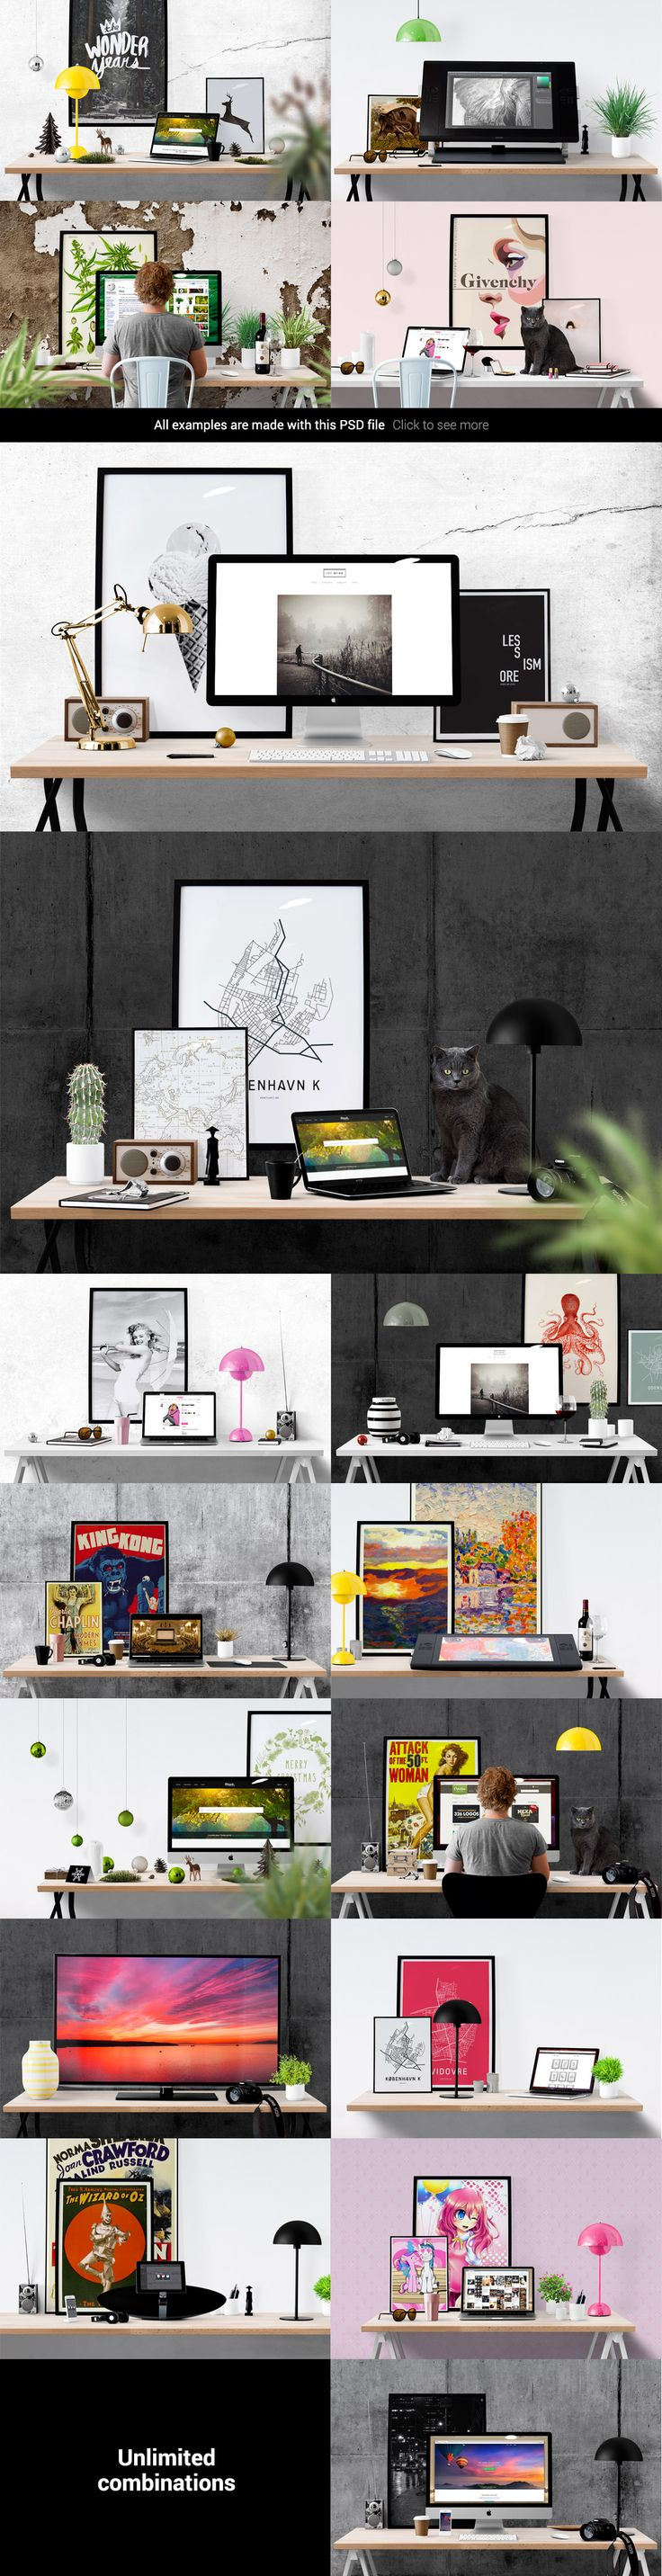 Mockup Scene Creator - Desk edition by Place.to on Creative Market